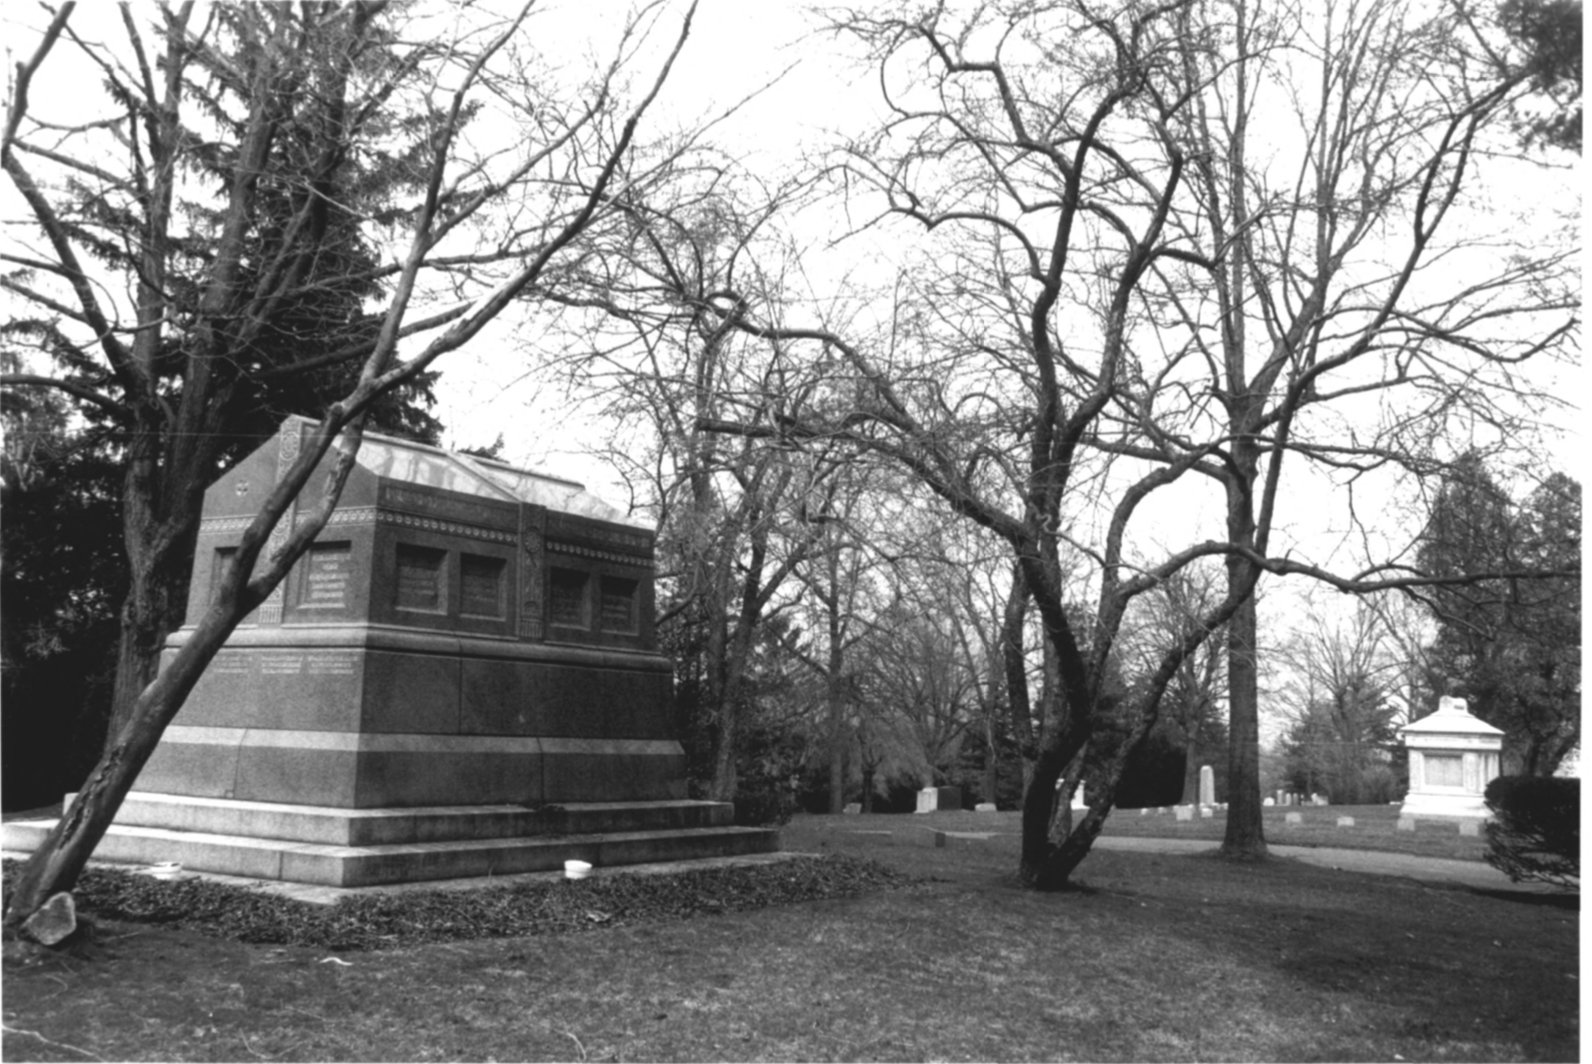 1997 NPS Photo Record of Cedar Hill Cemetary #10